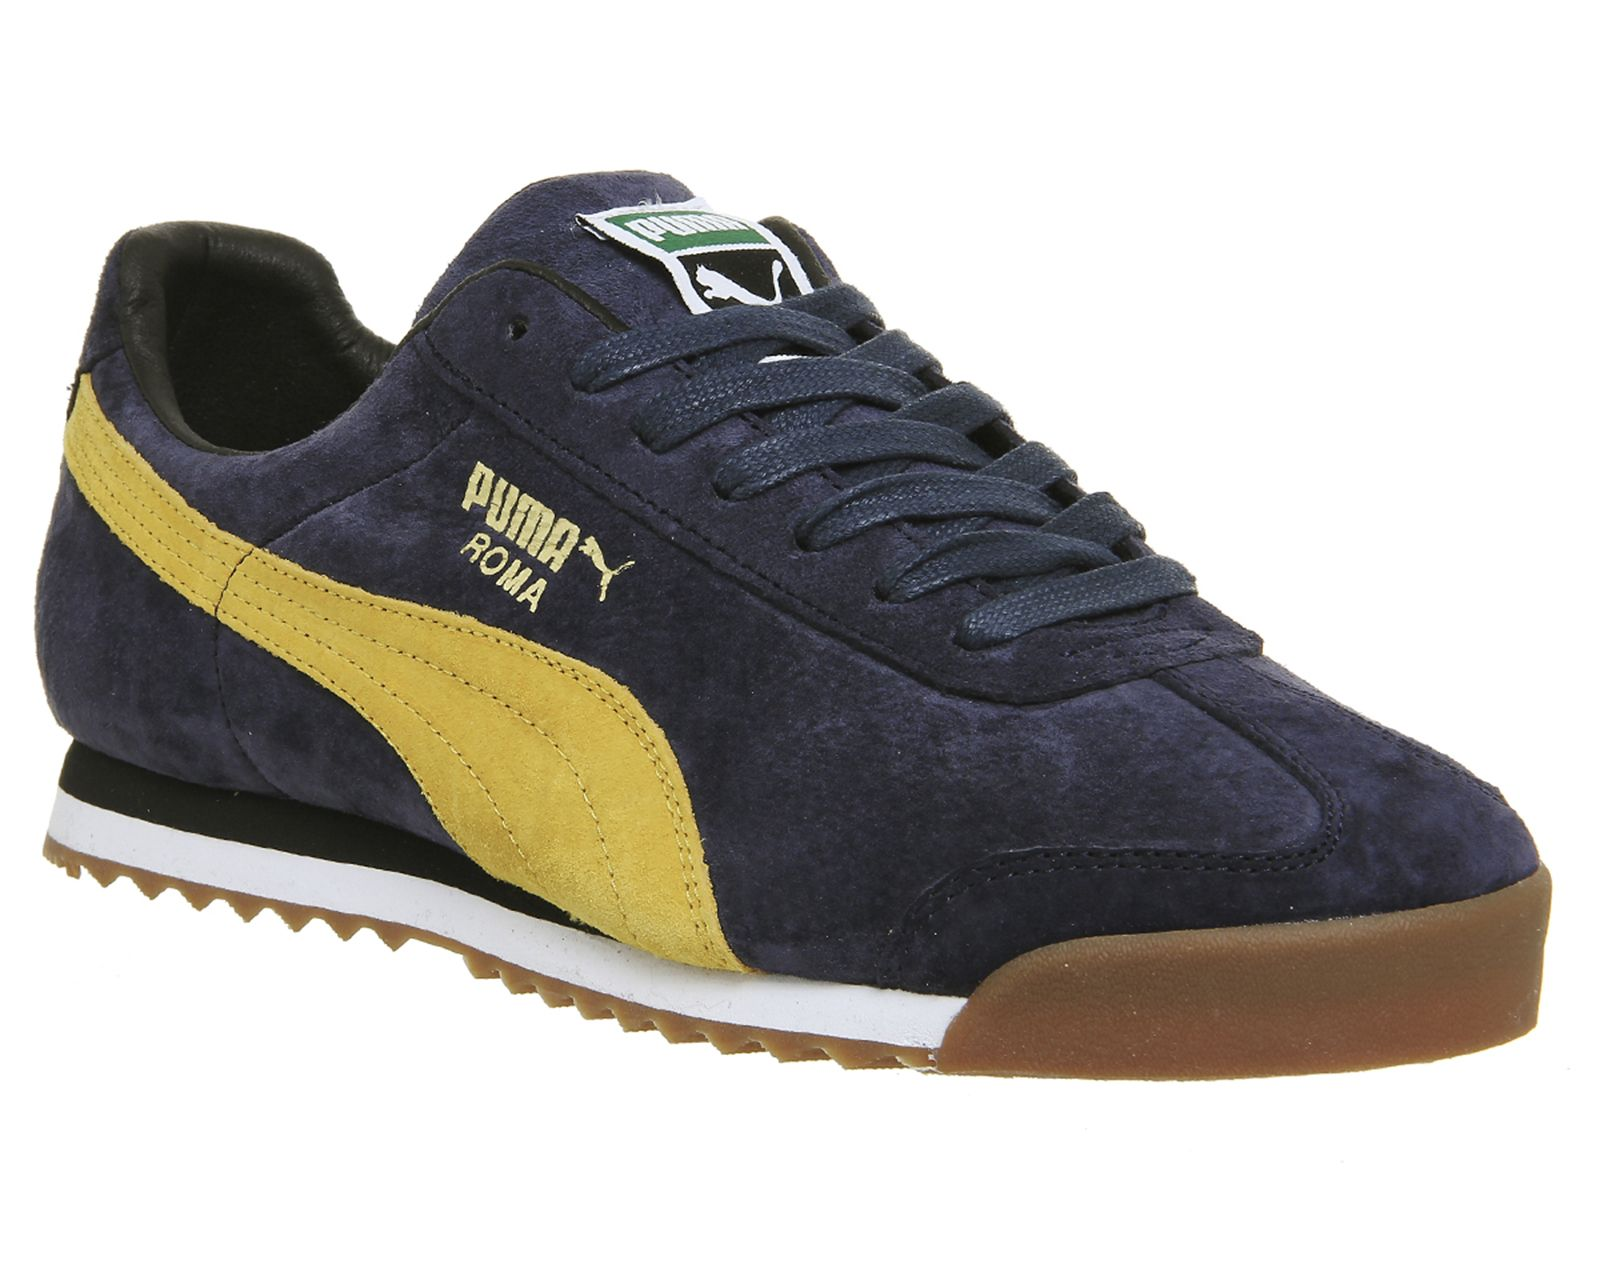 Puma, Roma, Navy Yellow Suede Exclusive | Cheap puma shoes